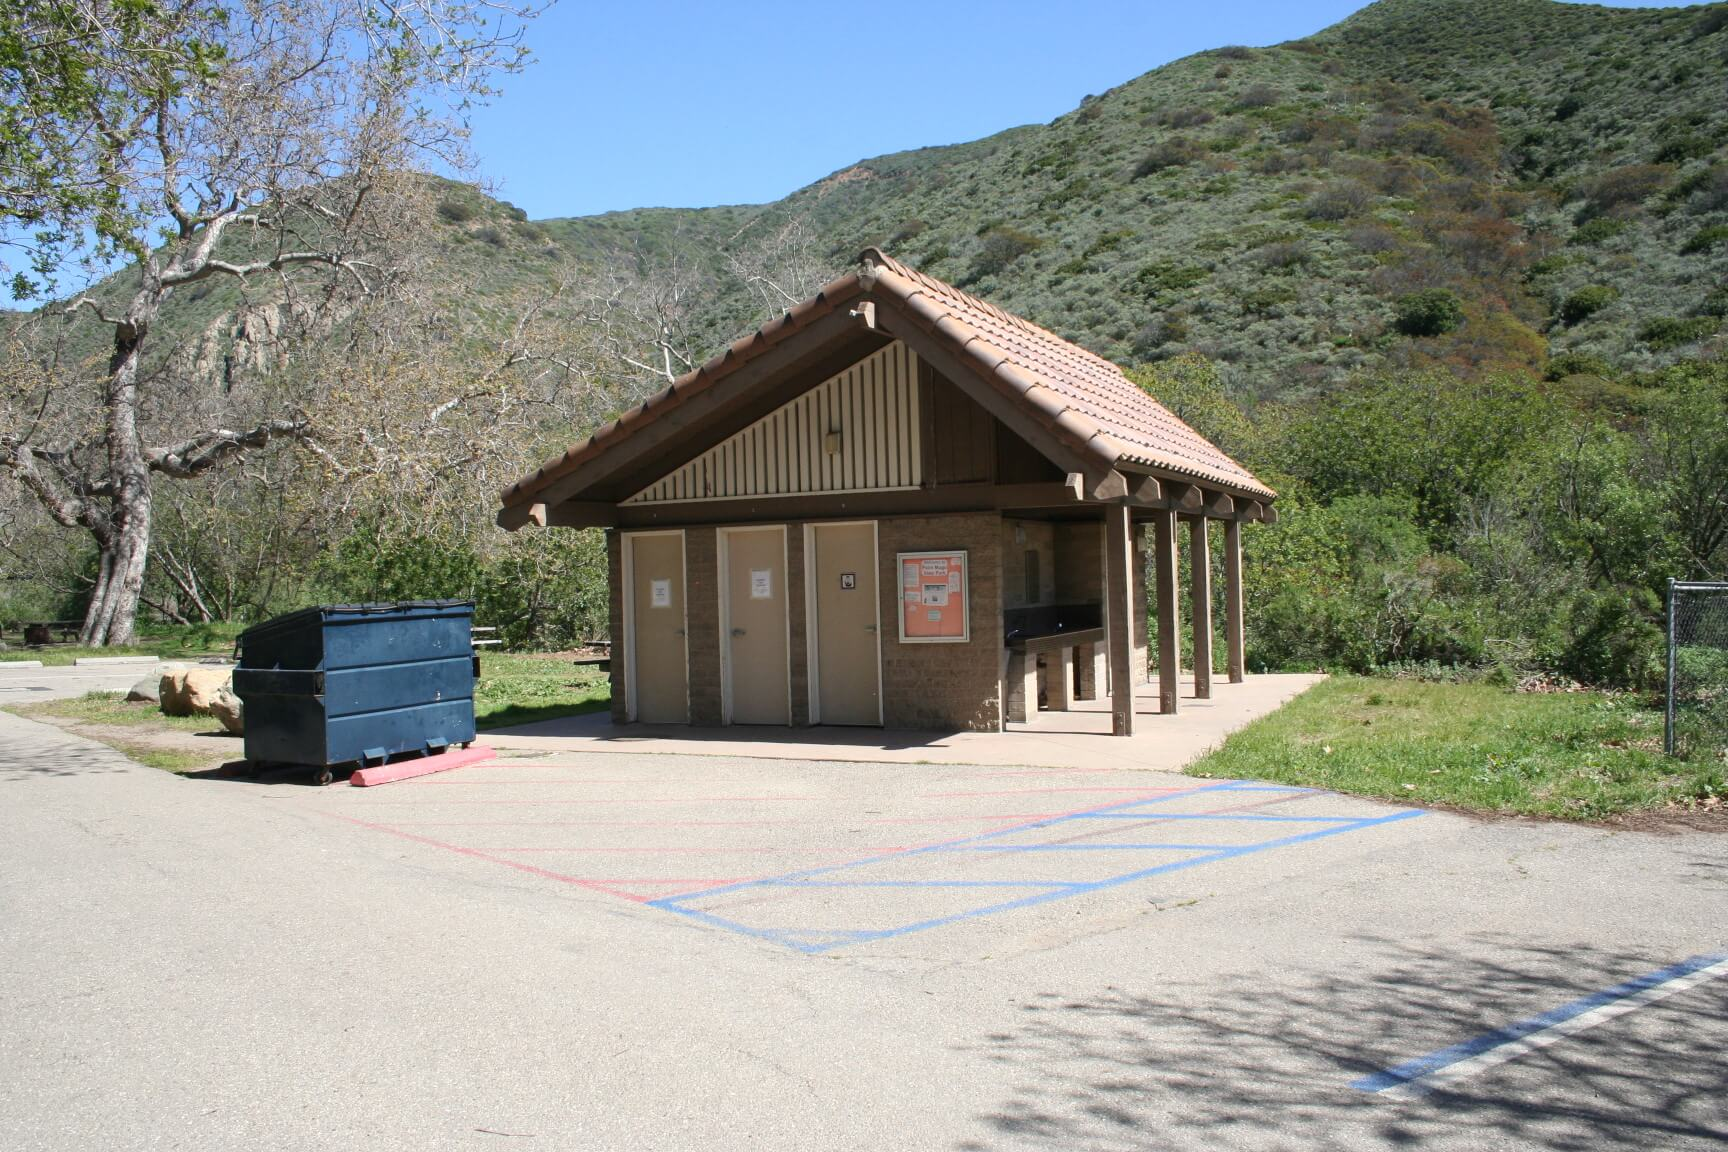 Sycamore Canyon Restroom